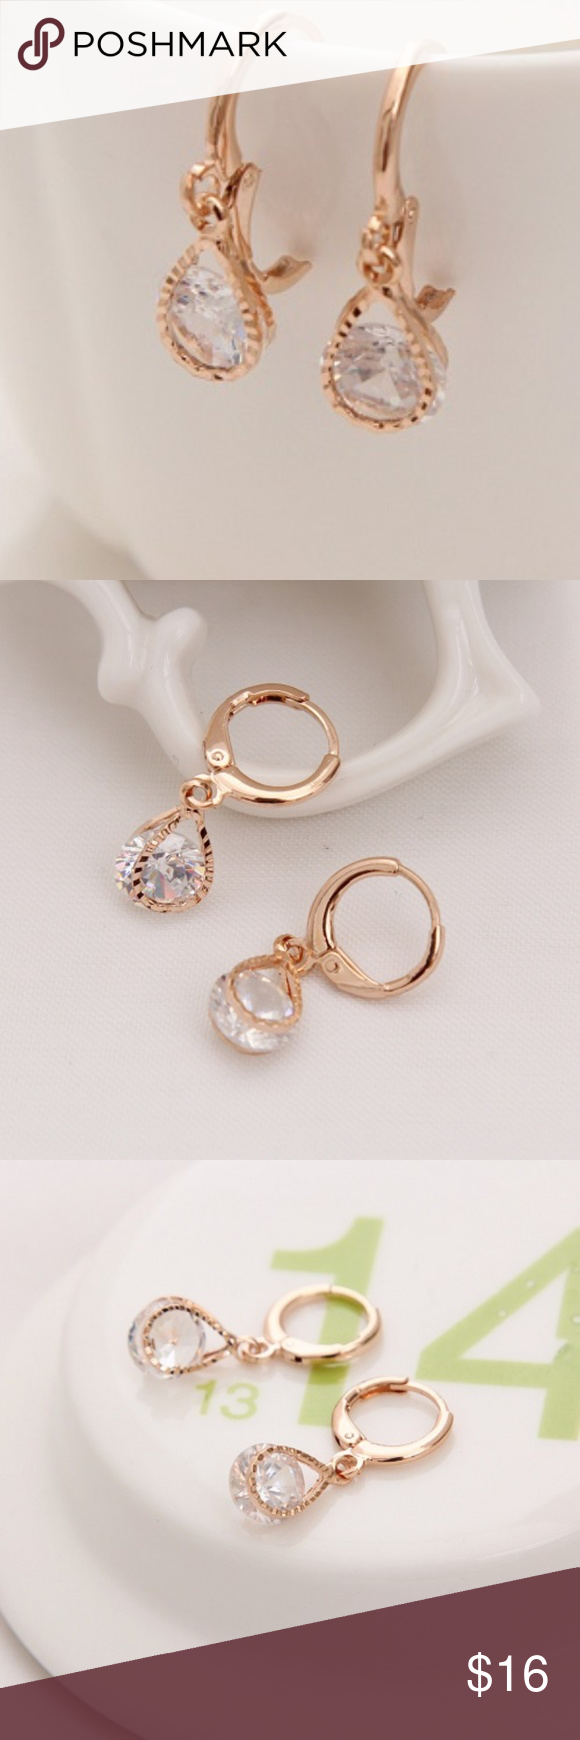 18k Gold Plated AAA CZ Earrings Teardrop setting A Unique 18k Rose Gold Plated Teardrop Shaped Setting in Front & Back Gently Hugs the Crystal Clear Brilliant Cut AAA CZ in place. Allows the CZ to catch light so it shimmers and shines with movement. These are a soon to be classic in any womans collection. The earrings measure at 1 inches from top to bottom and .31 inches wide. Jewelry Earrings